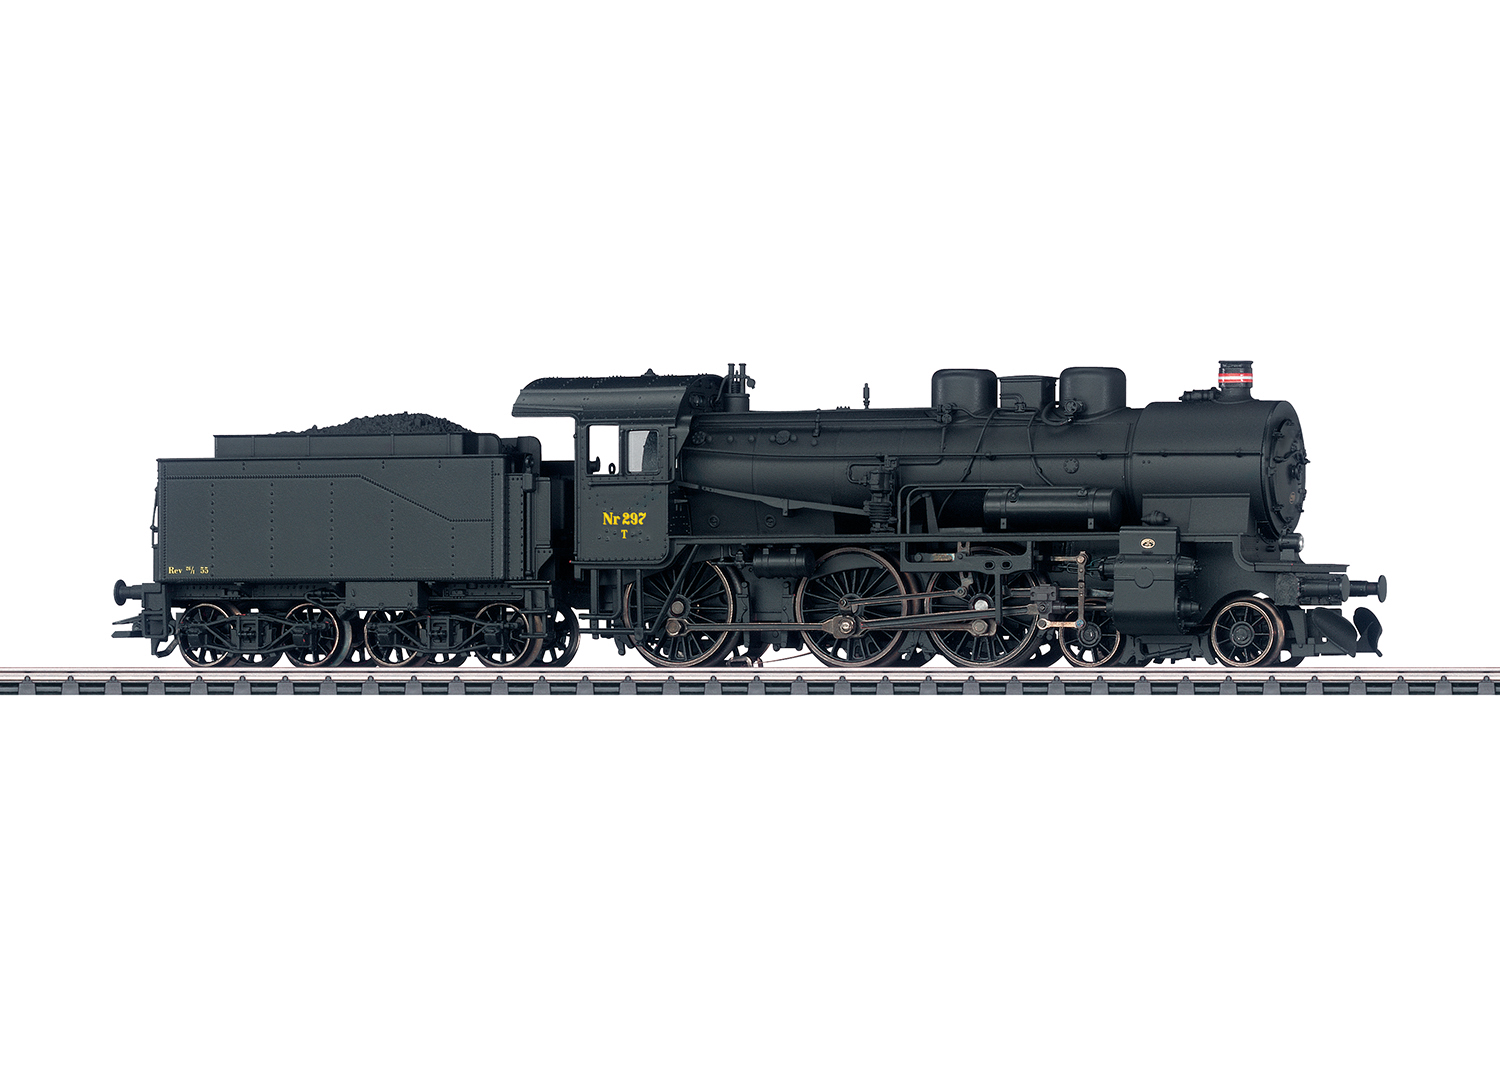 Class Litra T 297 Steam Locomotive with a Tender